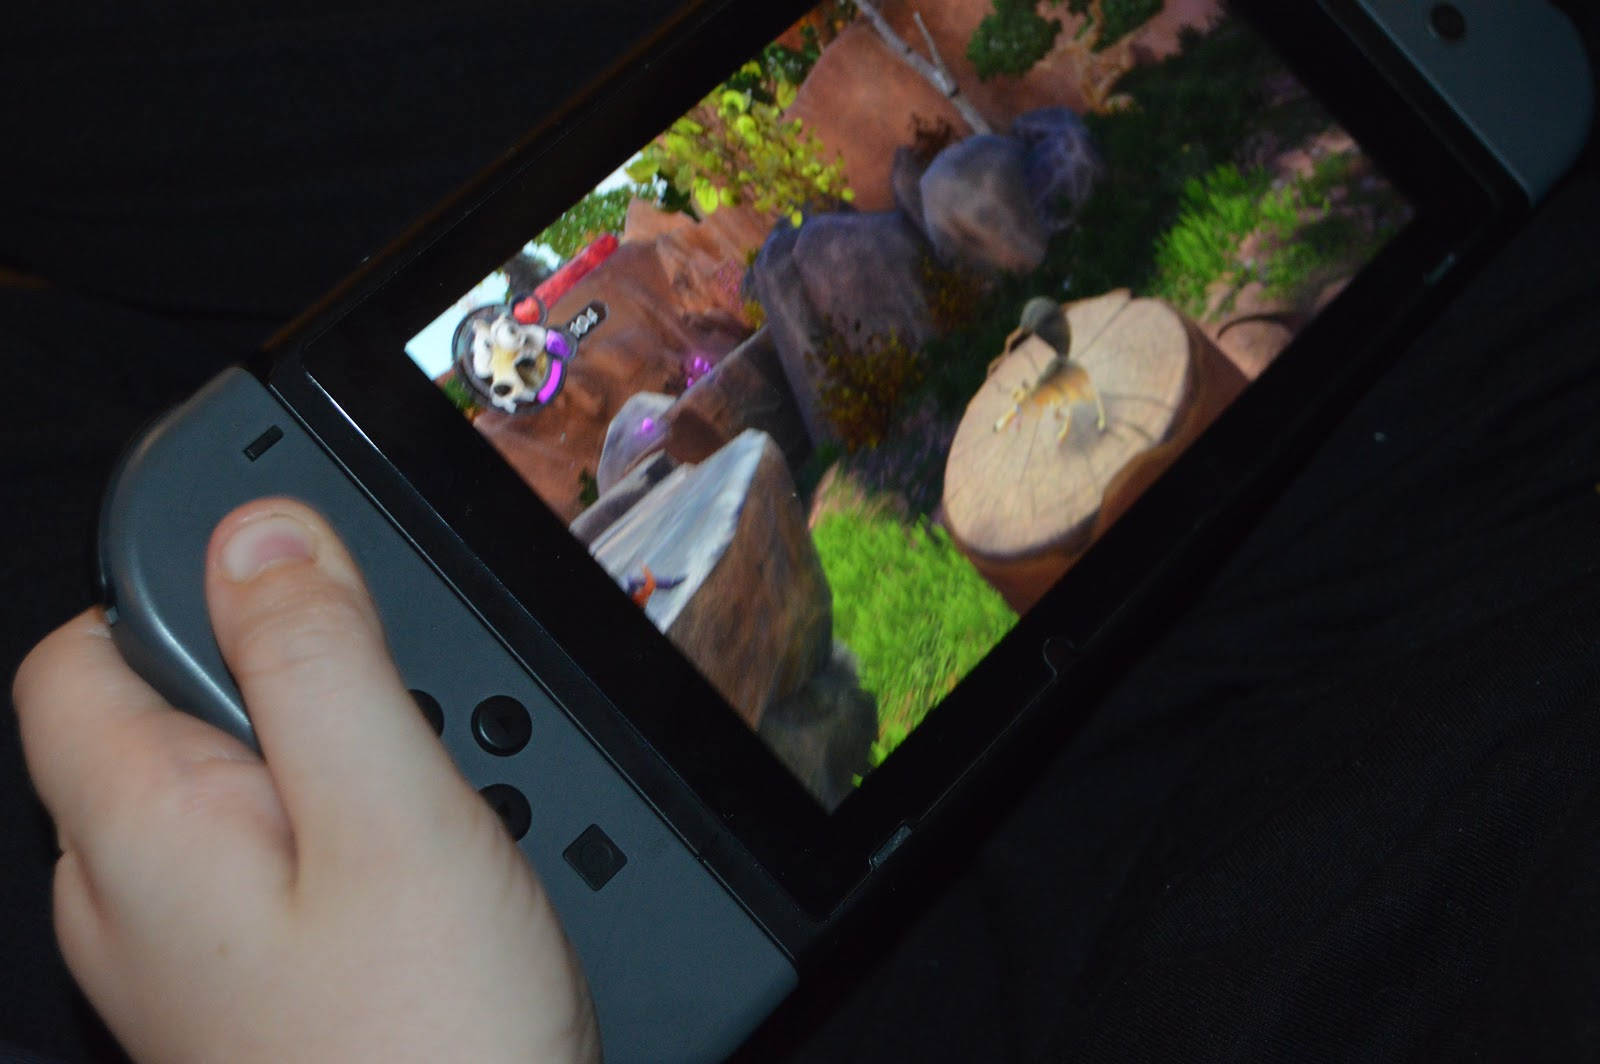 Ice Age Game on Nintendo Switch